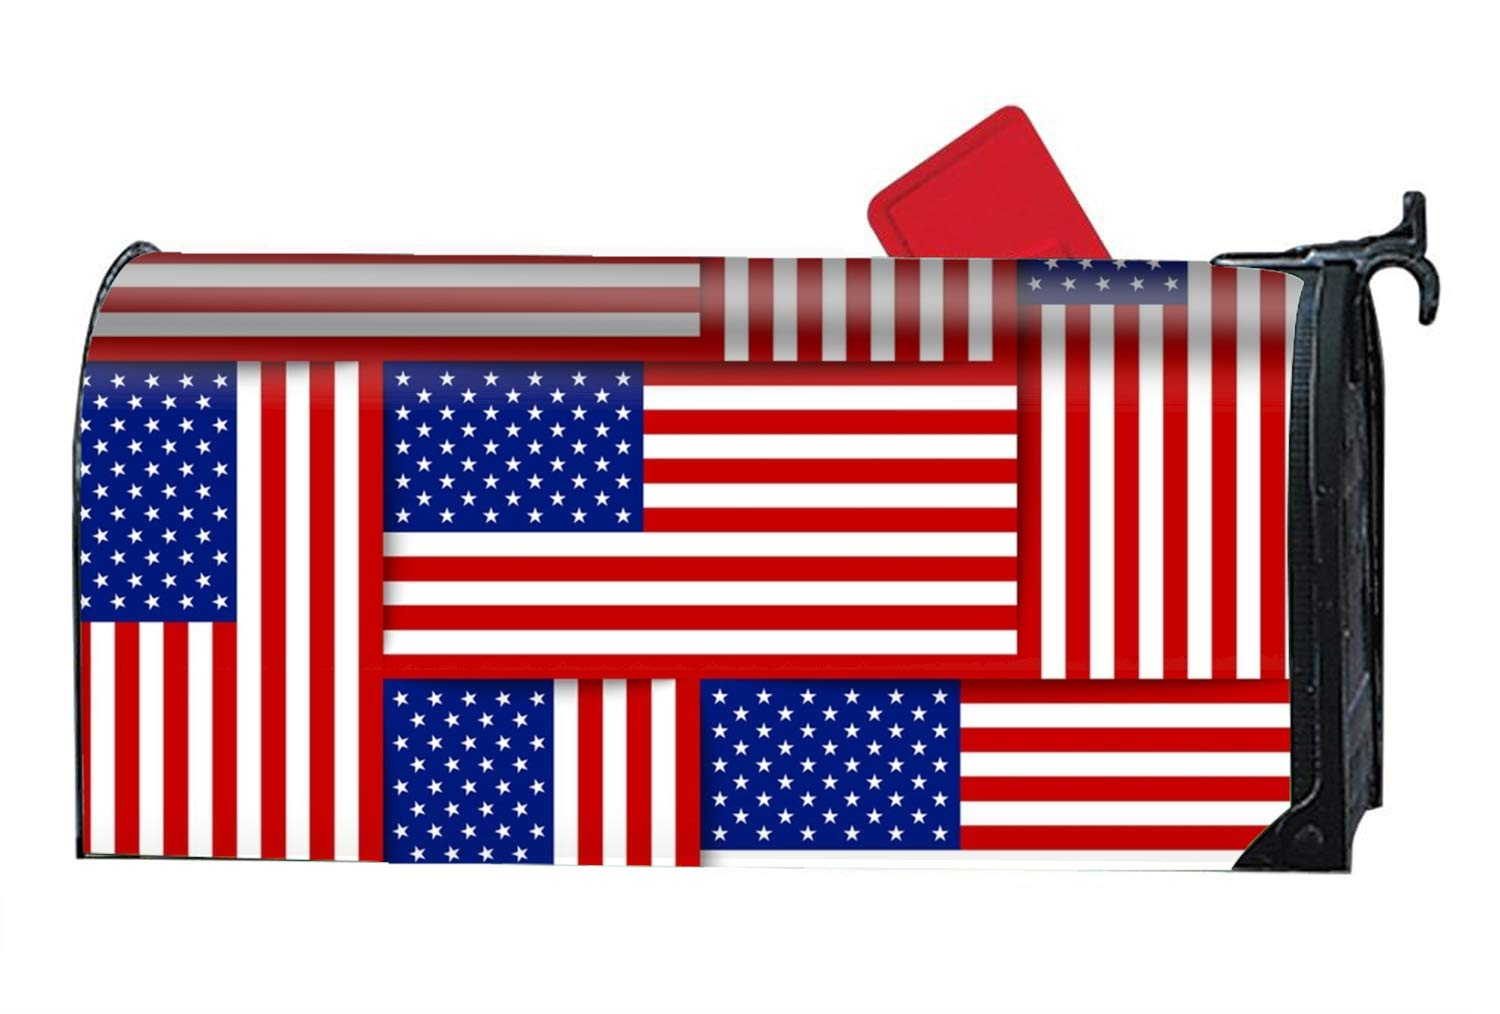 KSLIDS American Flag Mailbox Wrap Personalized Magnetic Mailbox Cover 9 x 21 inch